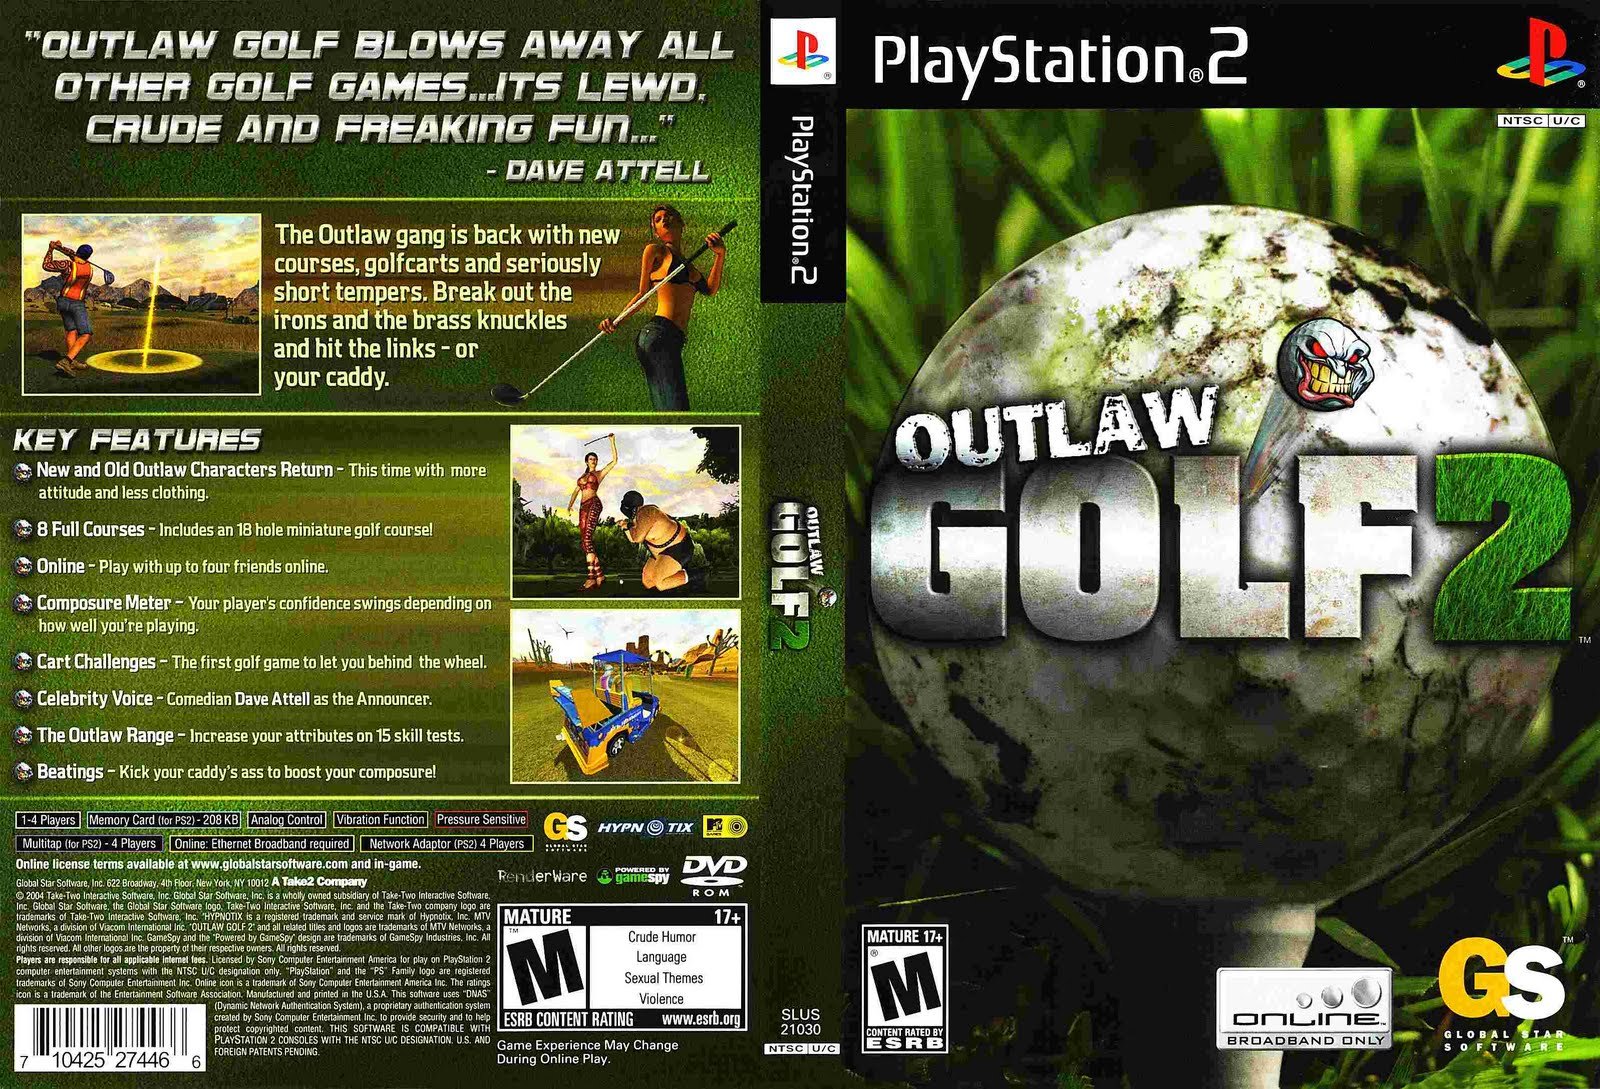 Outlaw golf 2 girls nude exploited pics